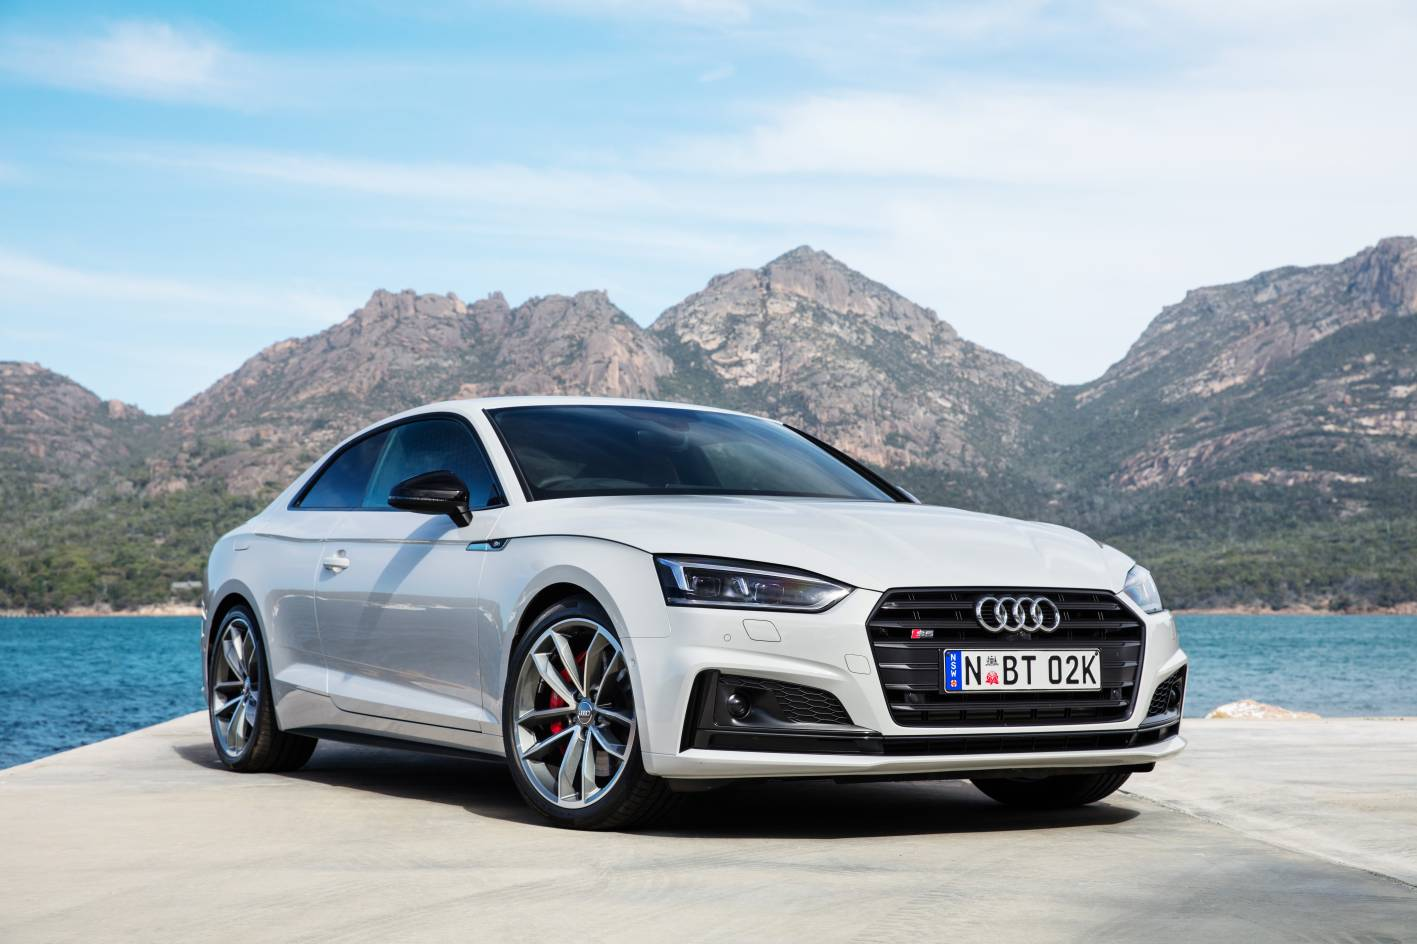 2017 Audi A5 and S5 Coupe pricing and specification announced - ForceGT.com